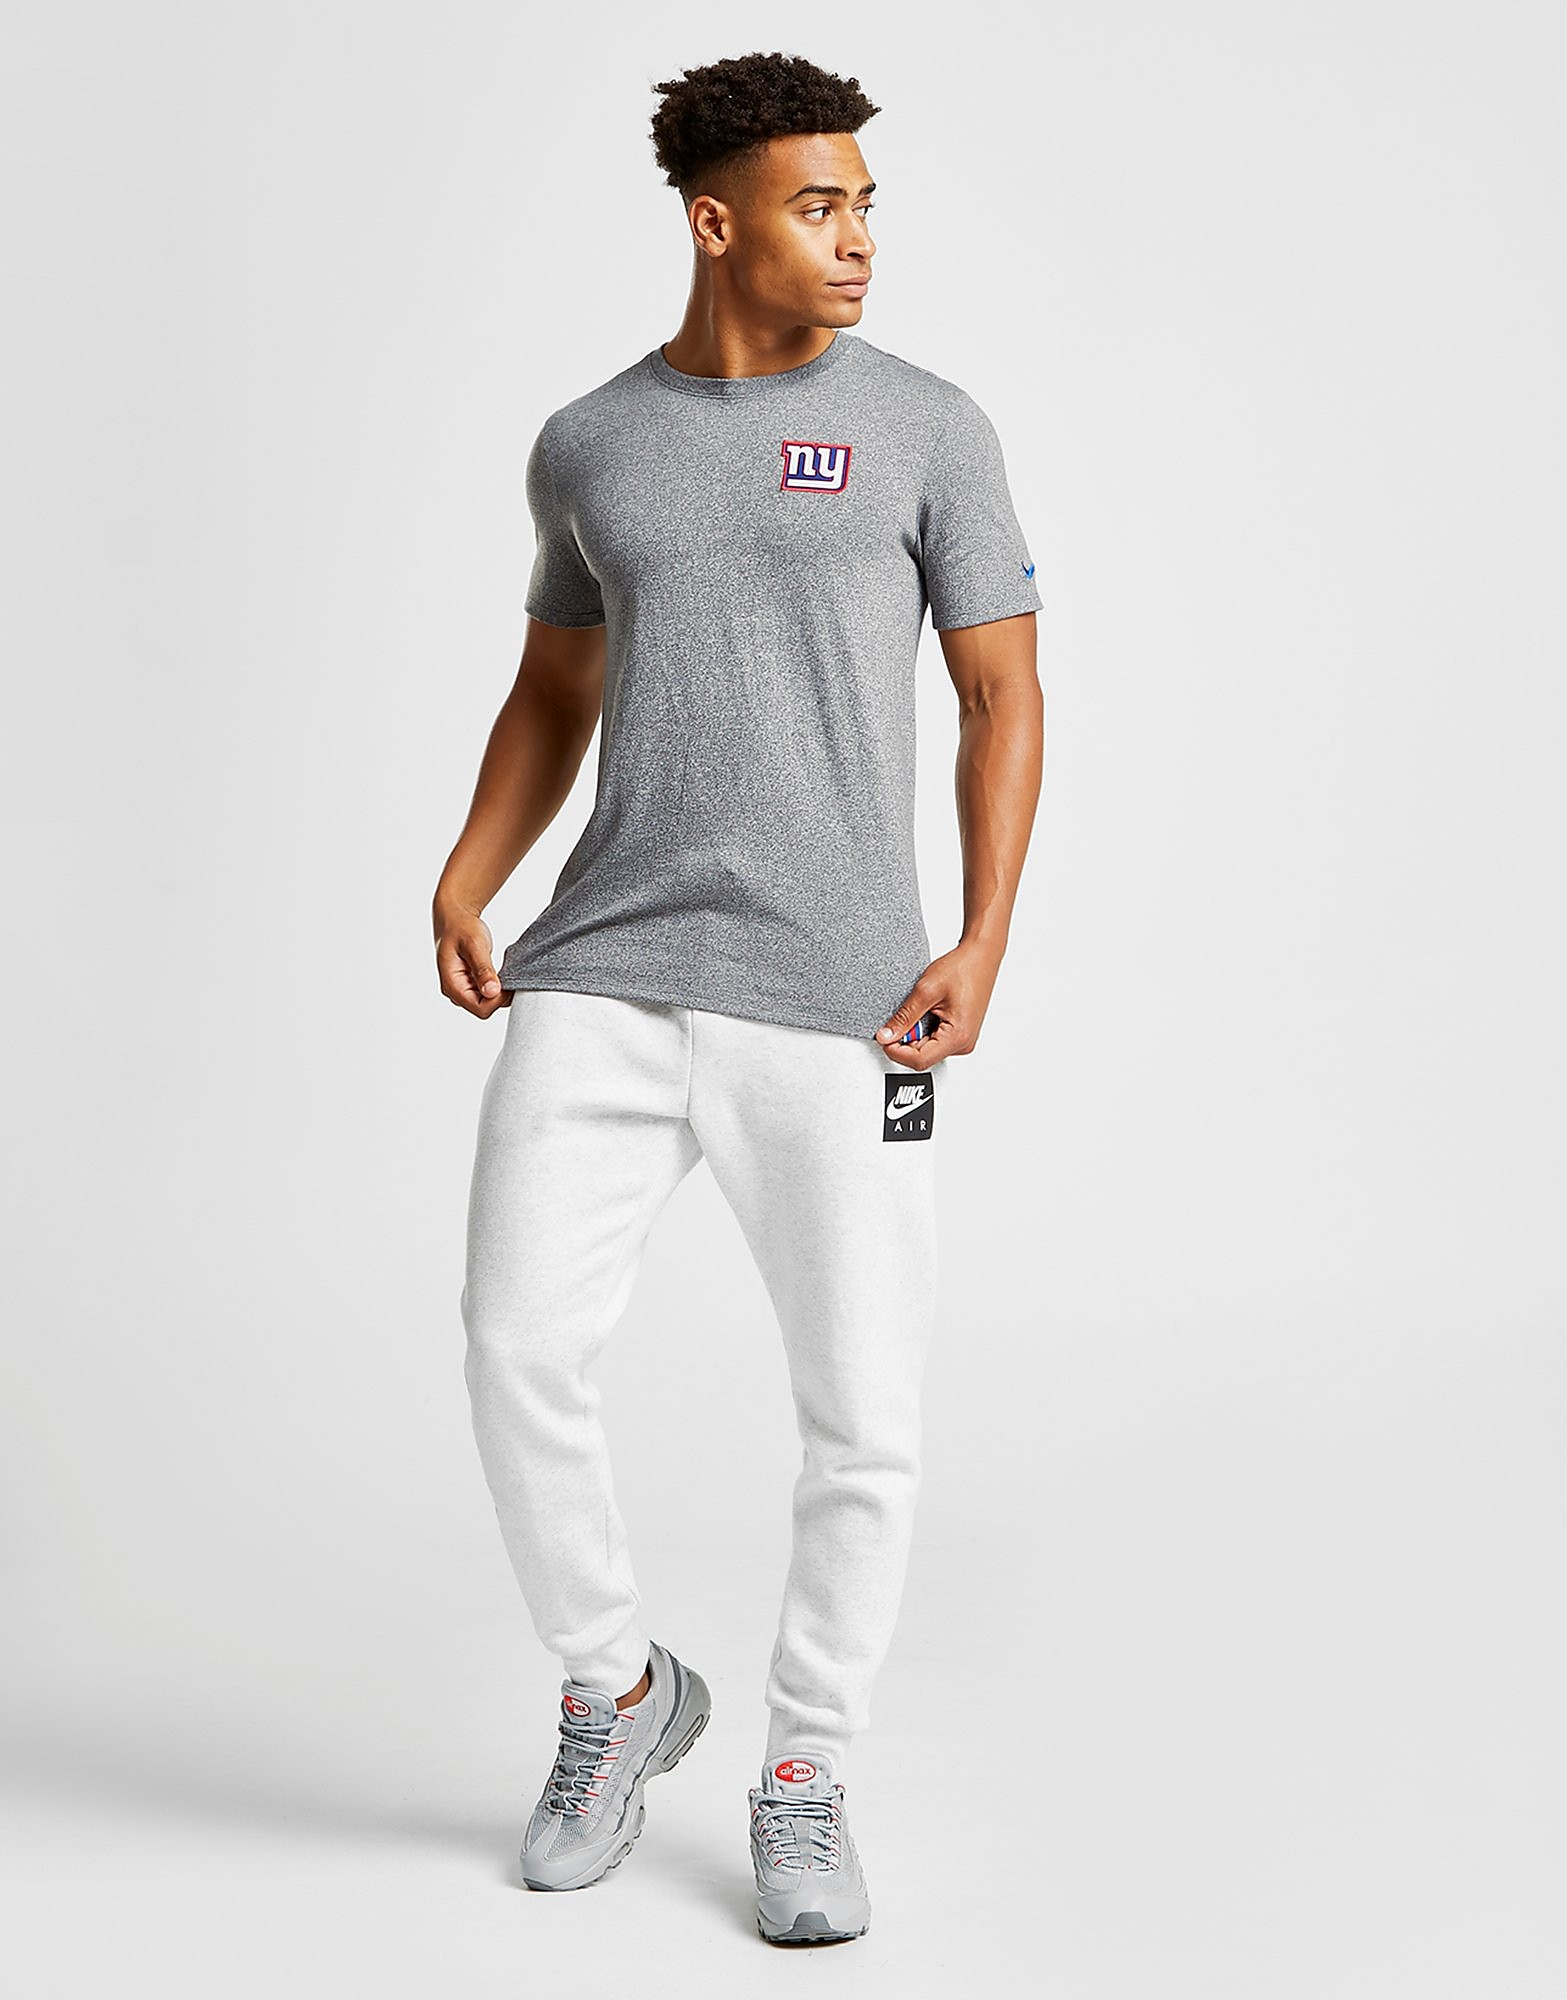 Nike New York Giants T-Shirt